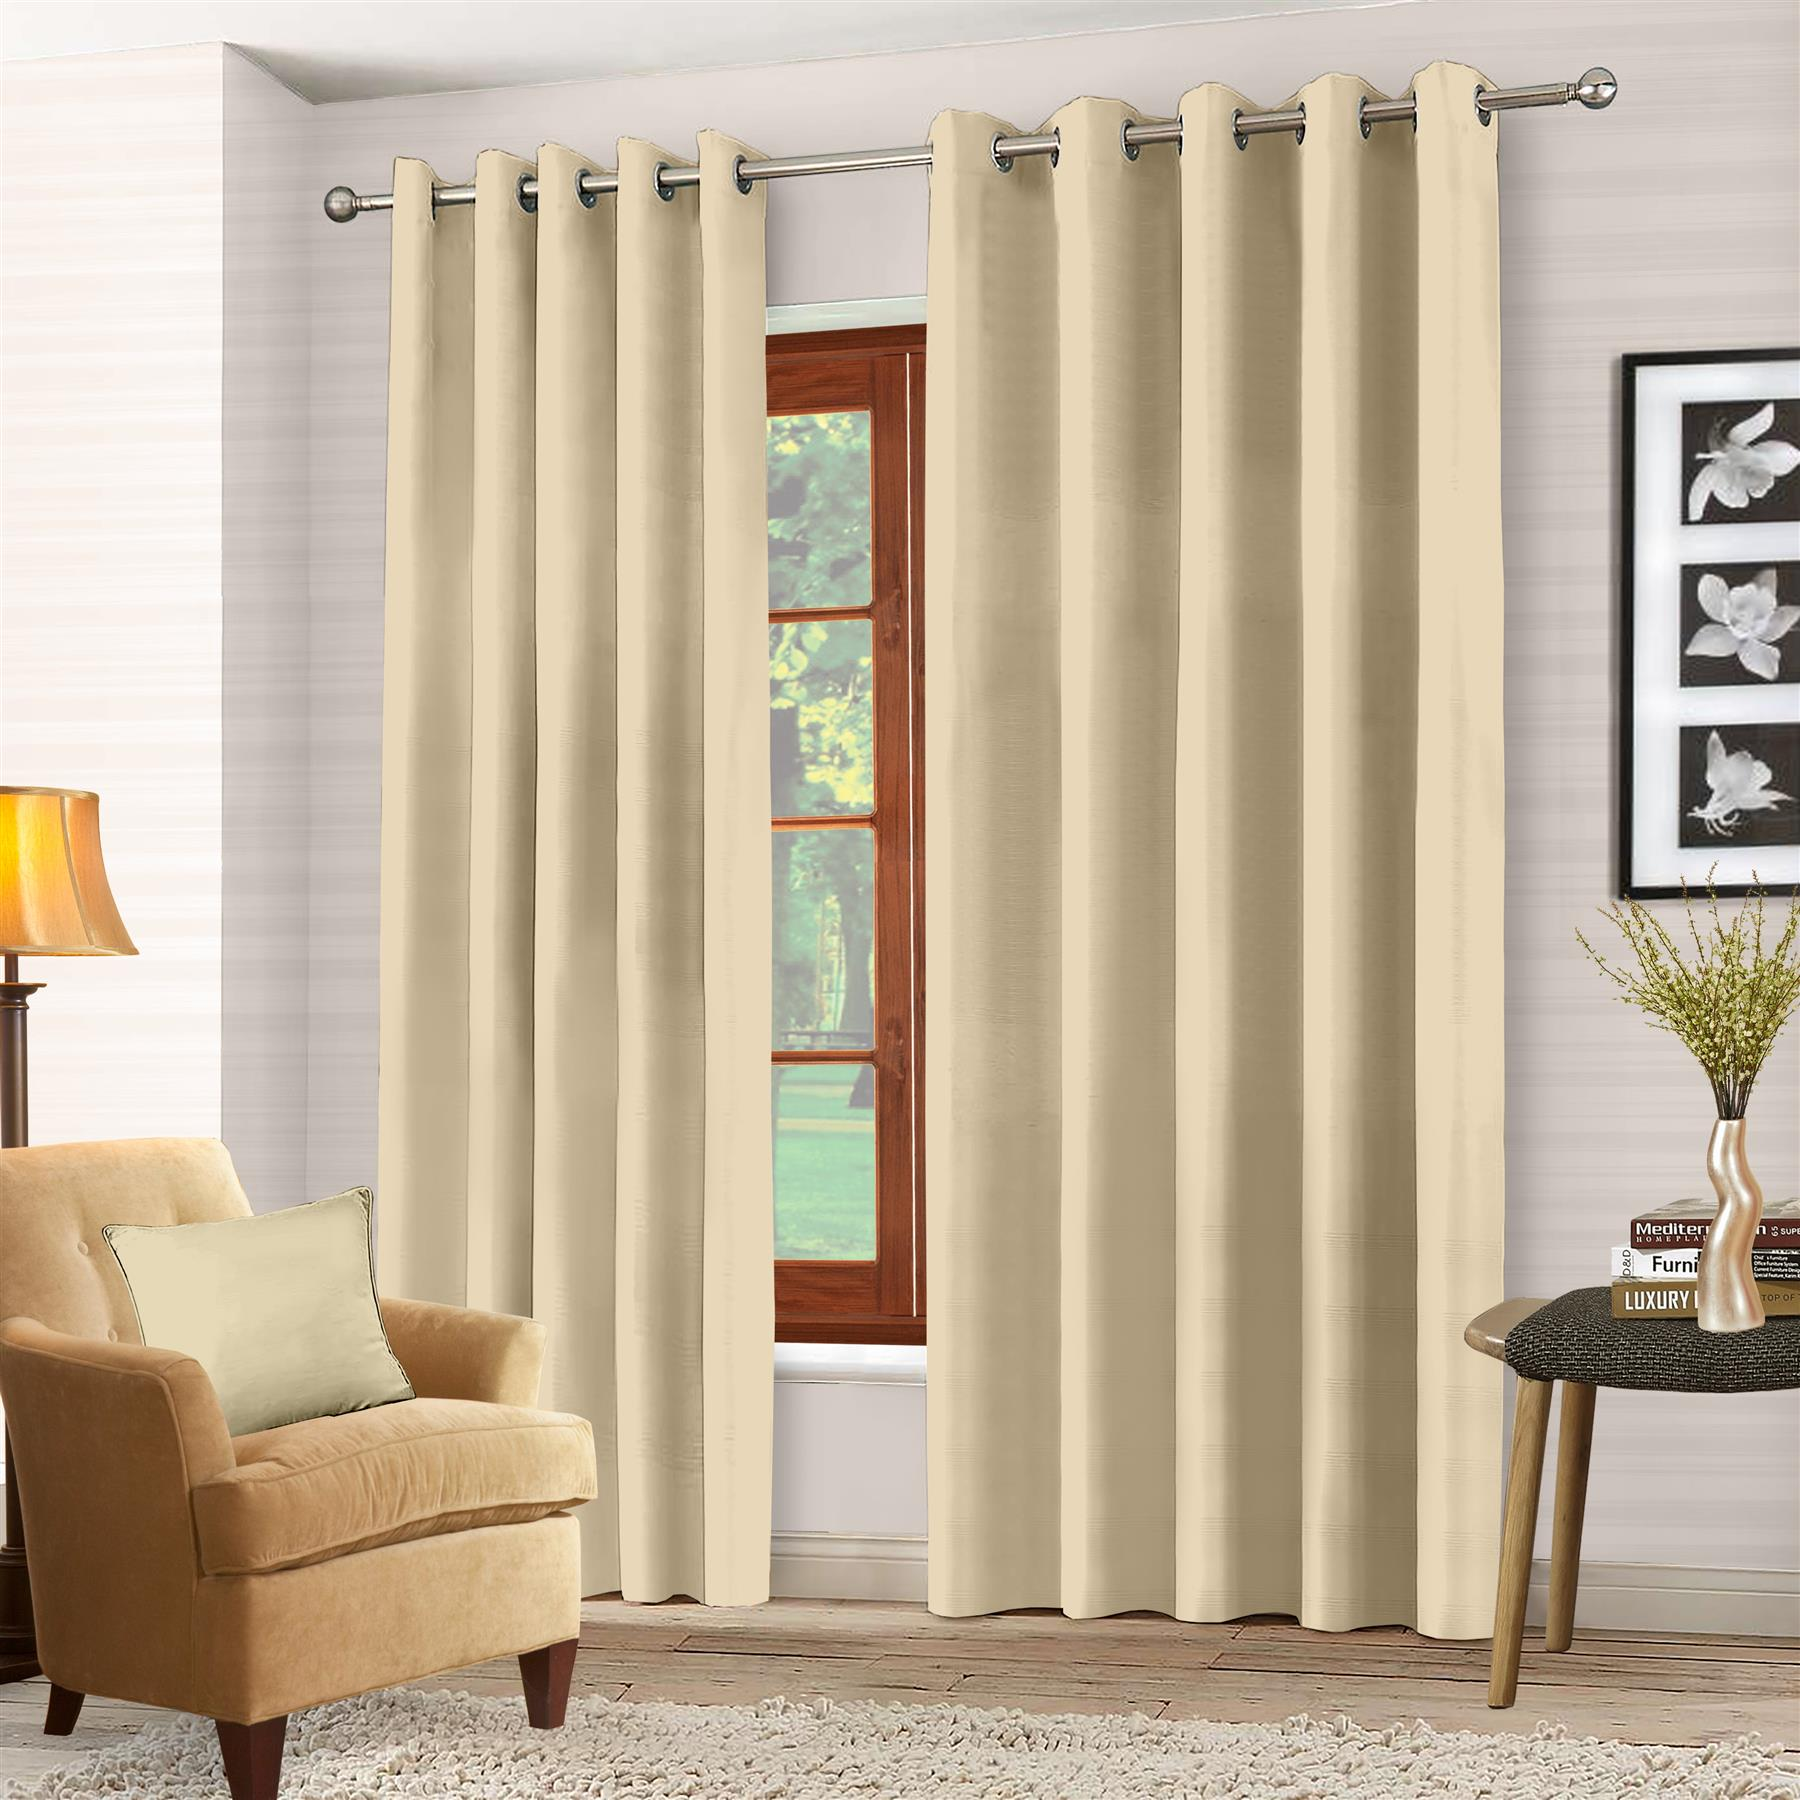 Luxury-Thermal-Blackout-Eyelet-Ring-Top-Curtains-Pair-with-tie-backs thumbnail 25